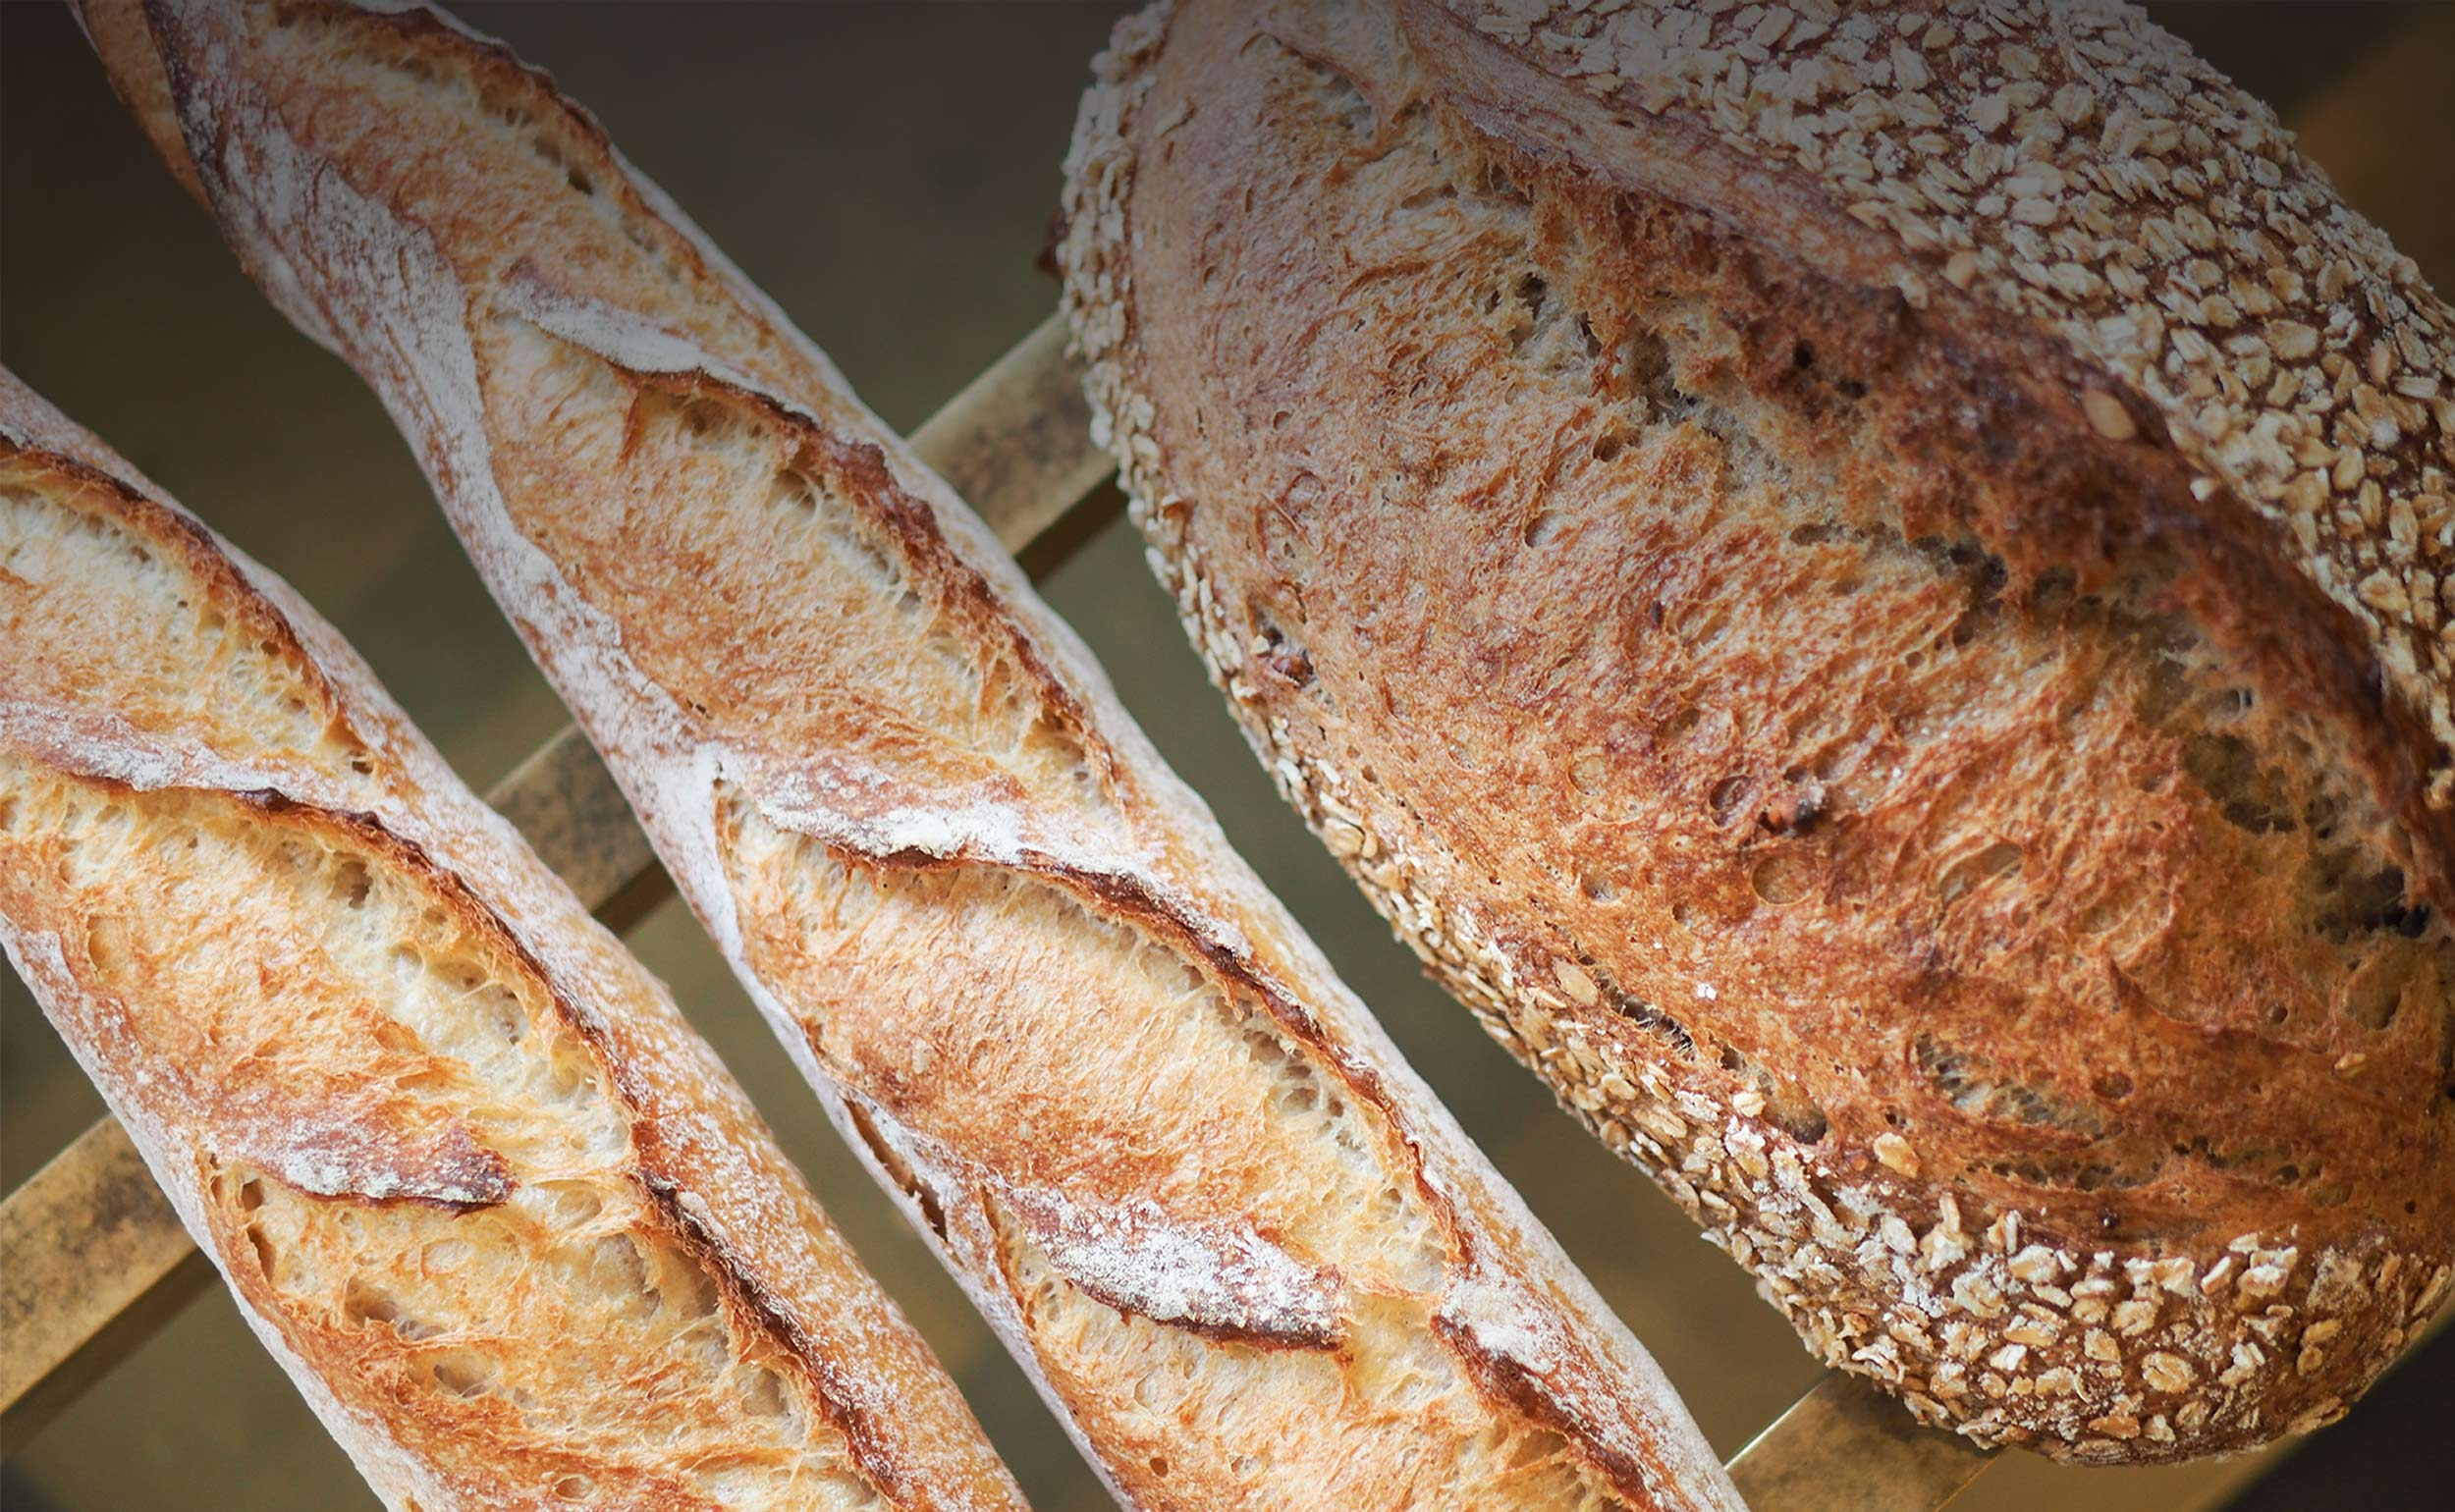 Two white baguettes and a loaf of bread covered in oats on a brass rack.